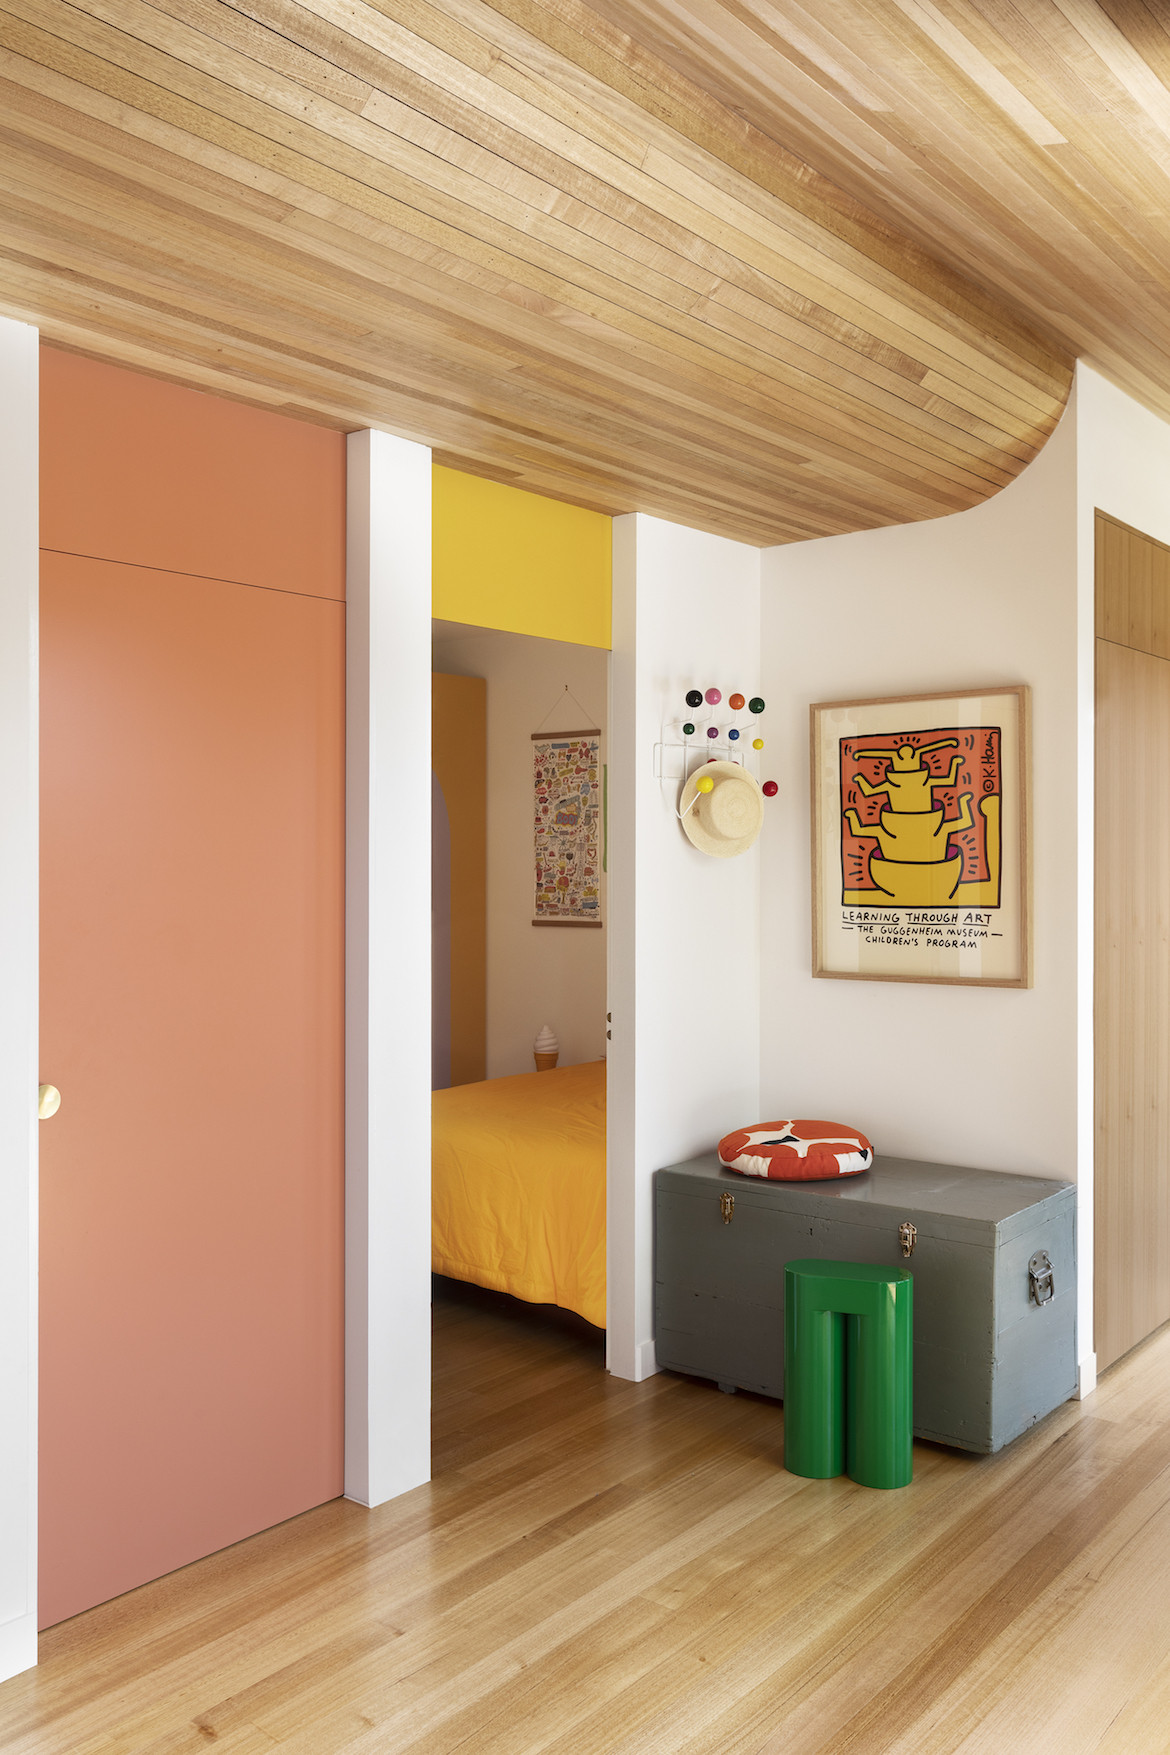 One pink door is closed, another is open to show a glimpse of one child's bedroom.